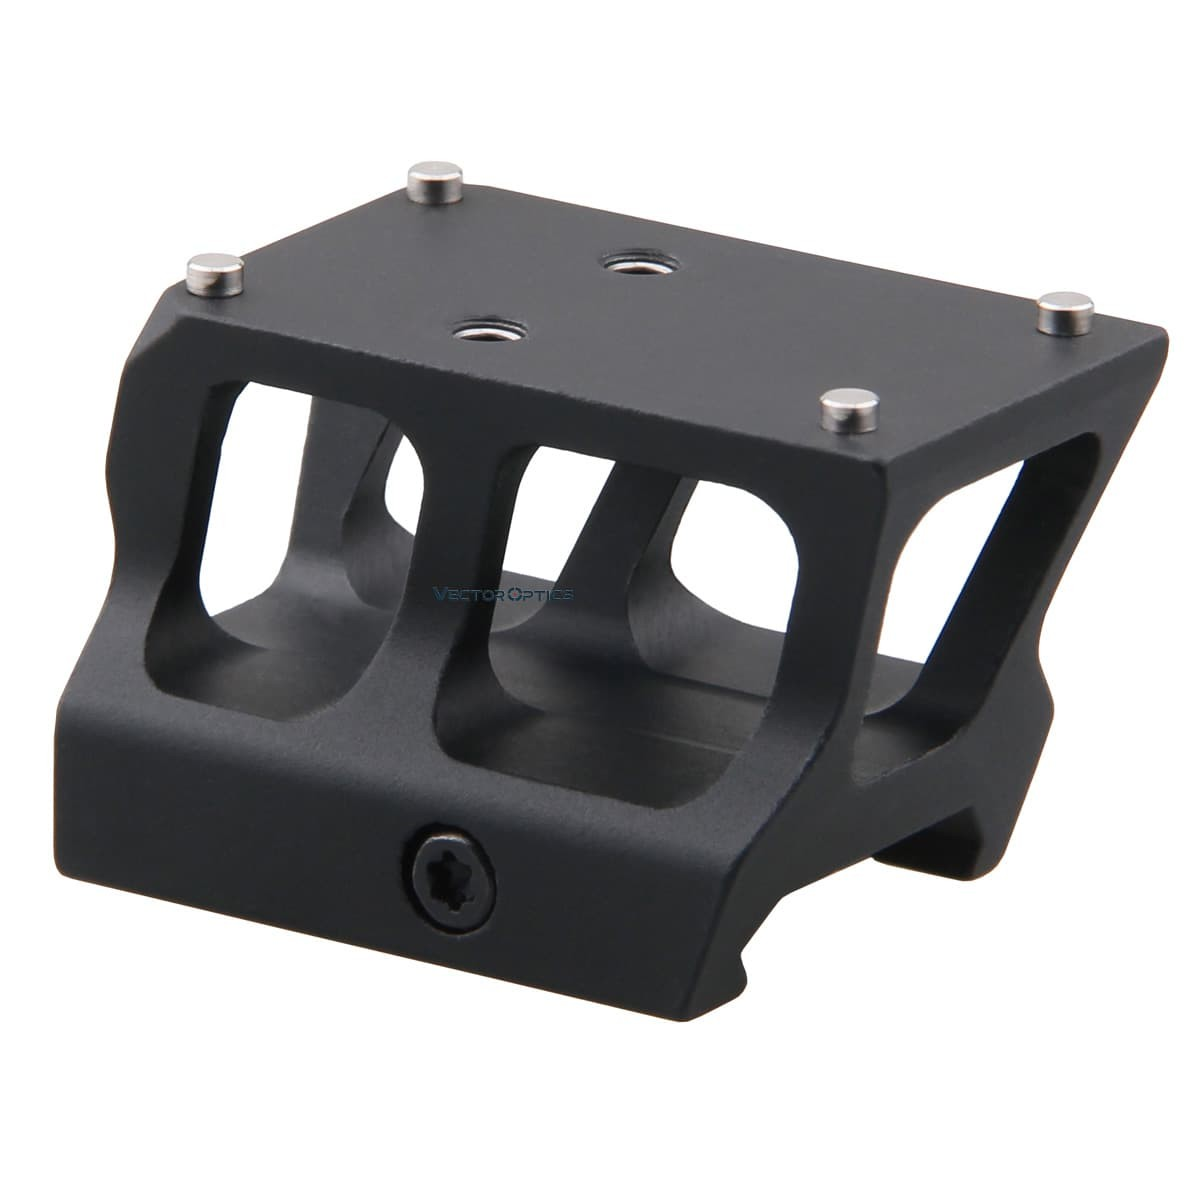 Red Dot Tactical Riser Mount SCRA-67